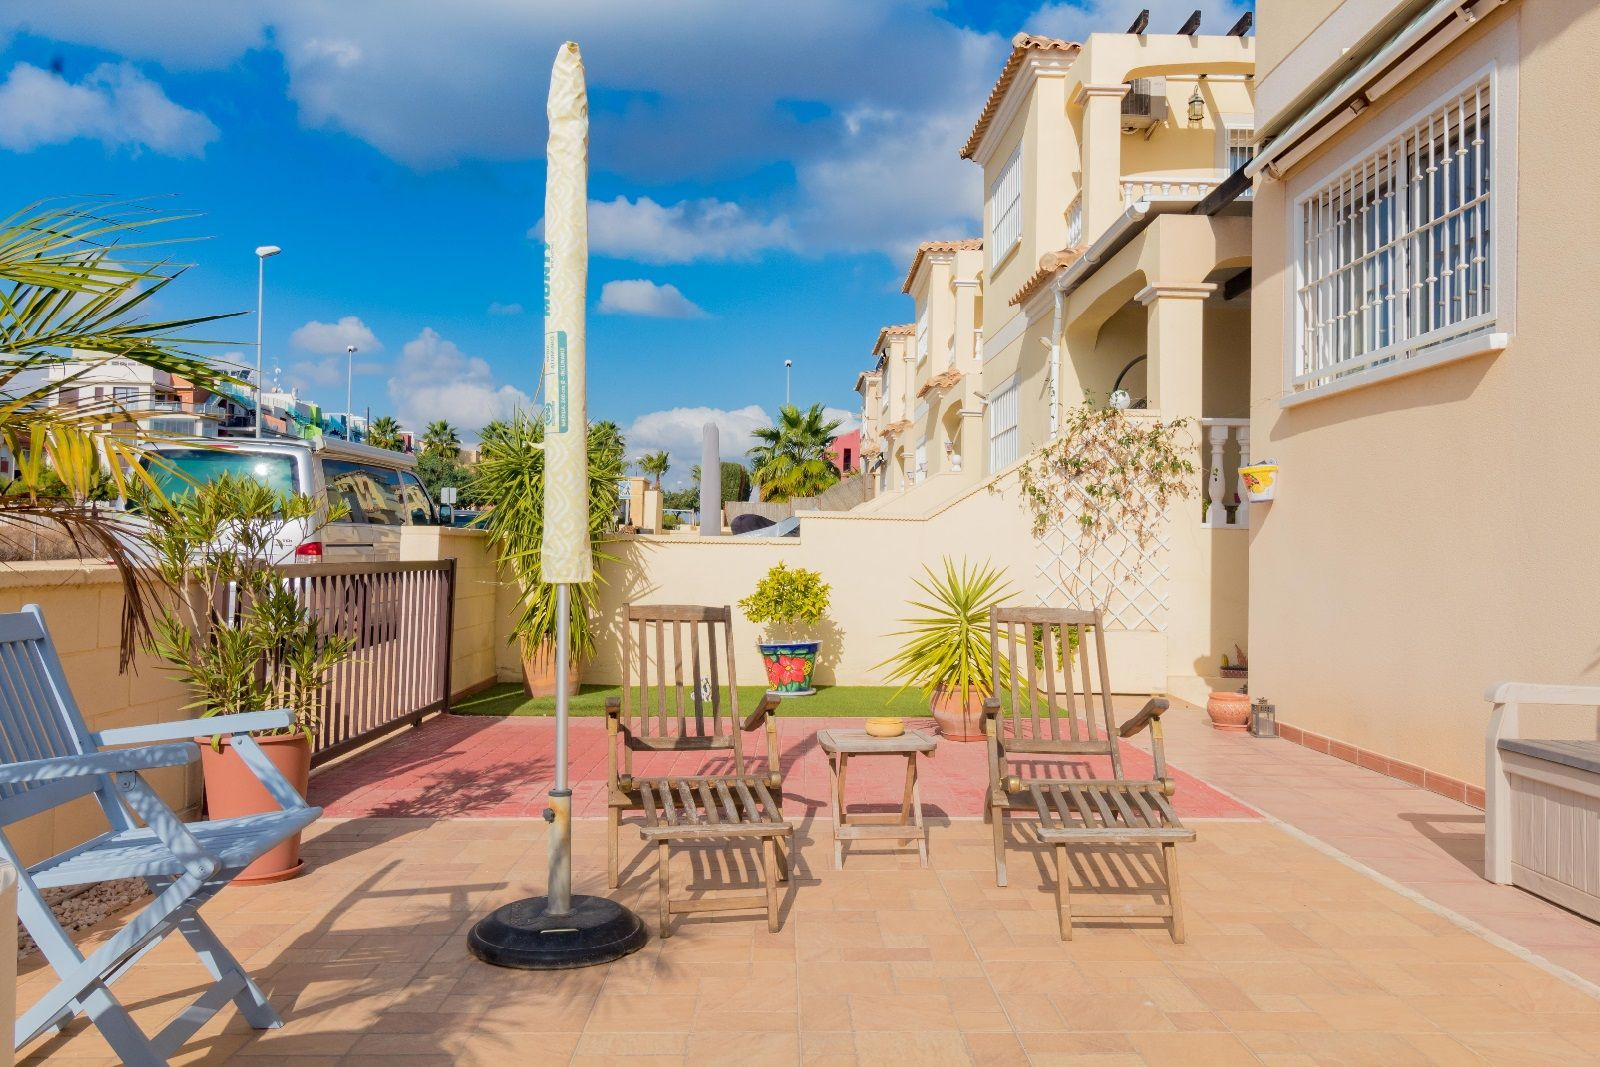 Stunning detached villa for sale only 5 minutes to Campoamor beach near all facilities.